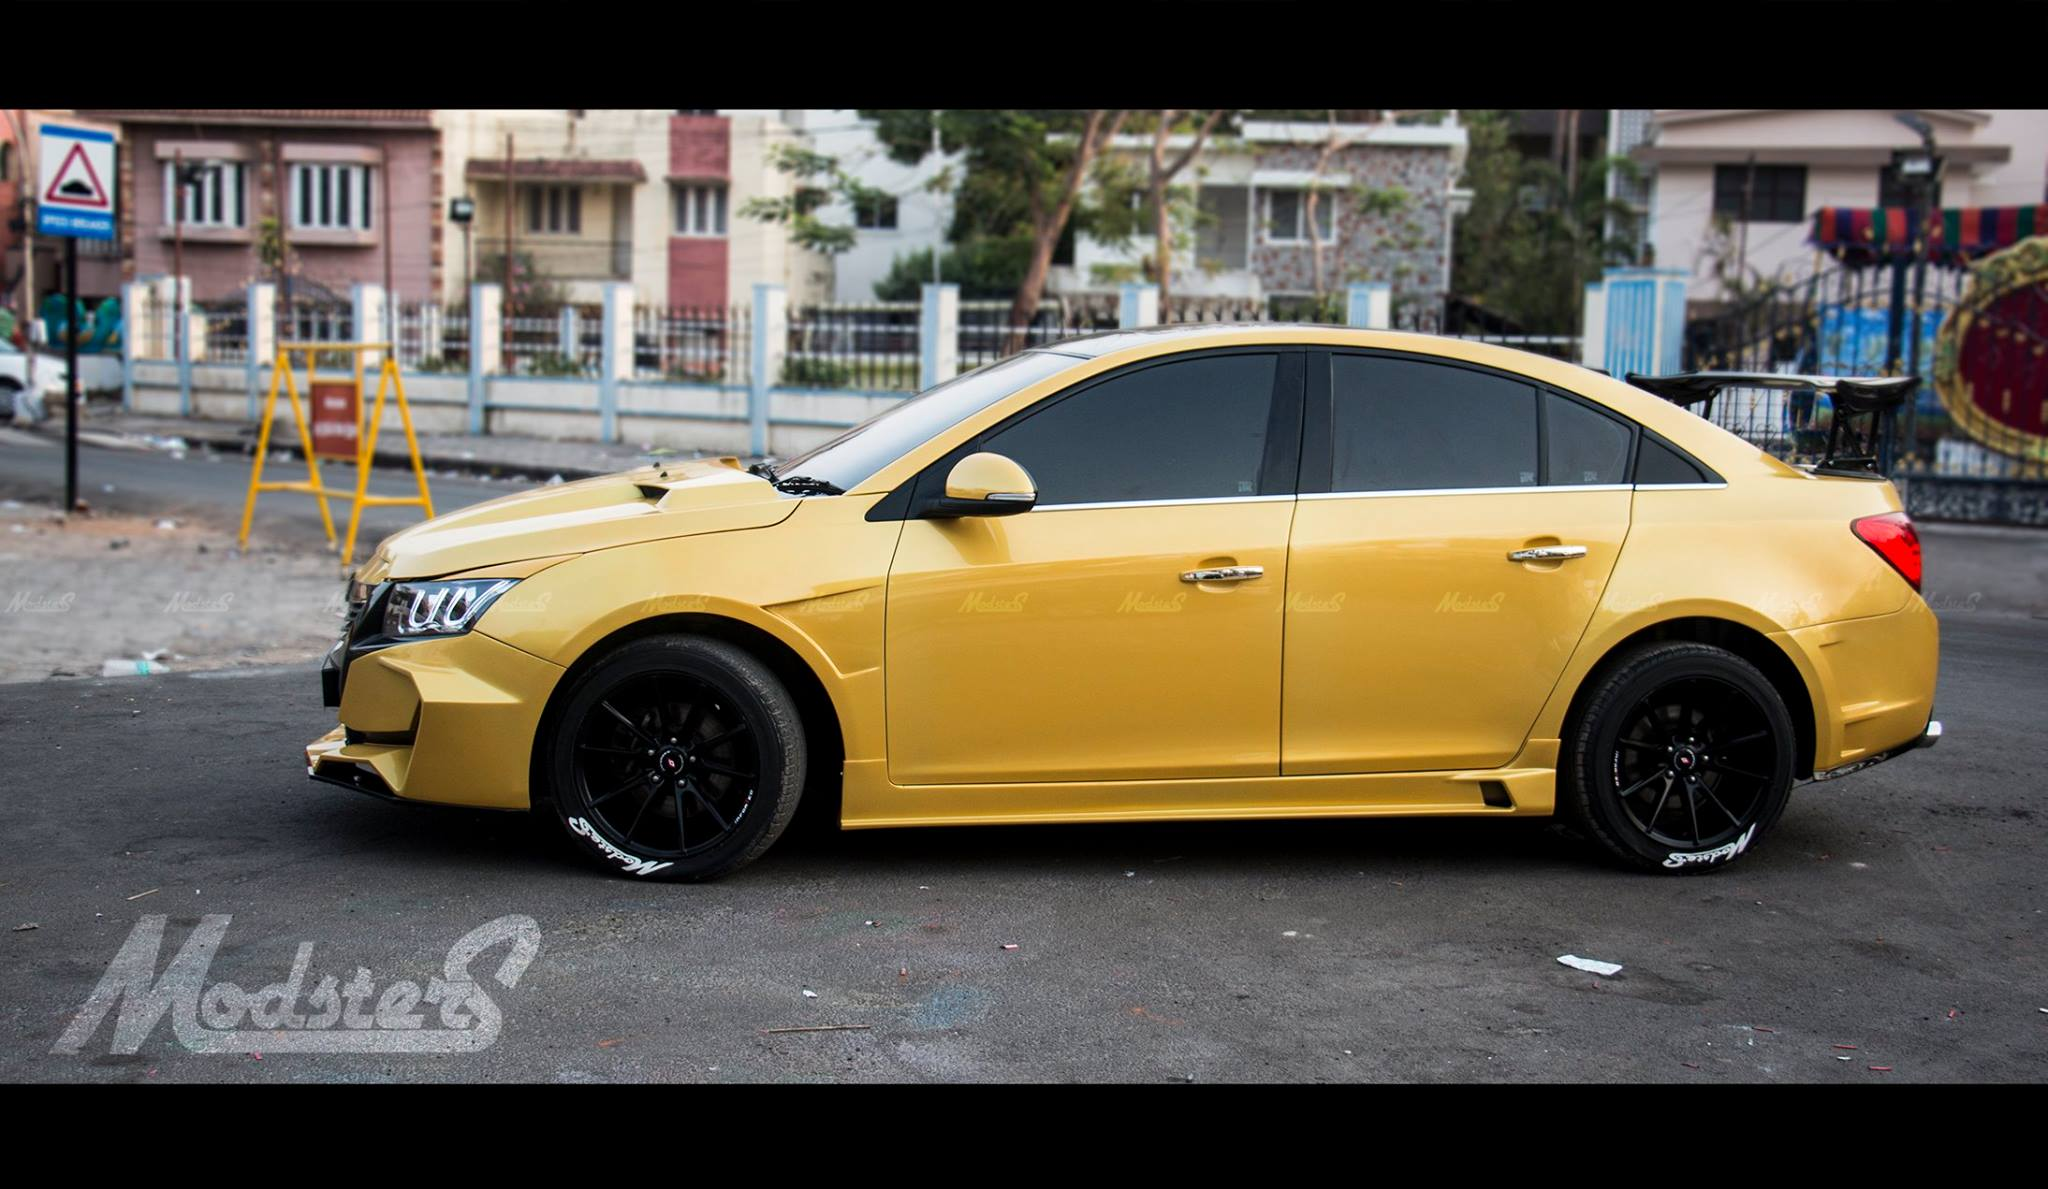 Chevrolet Cruze Project 'Yellow Transformer' side